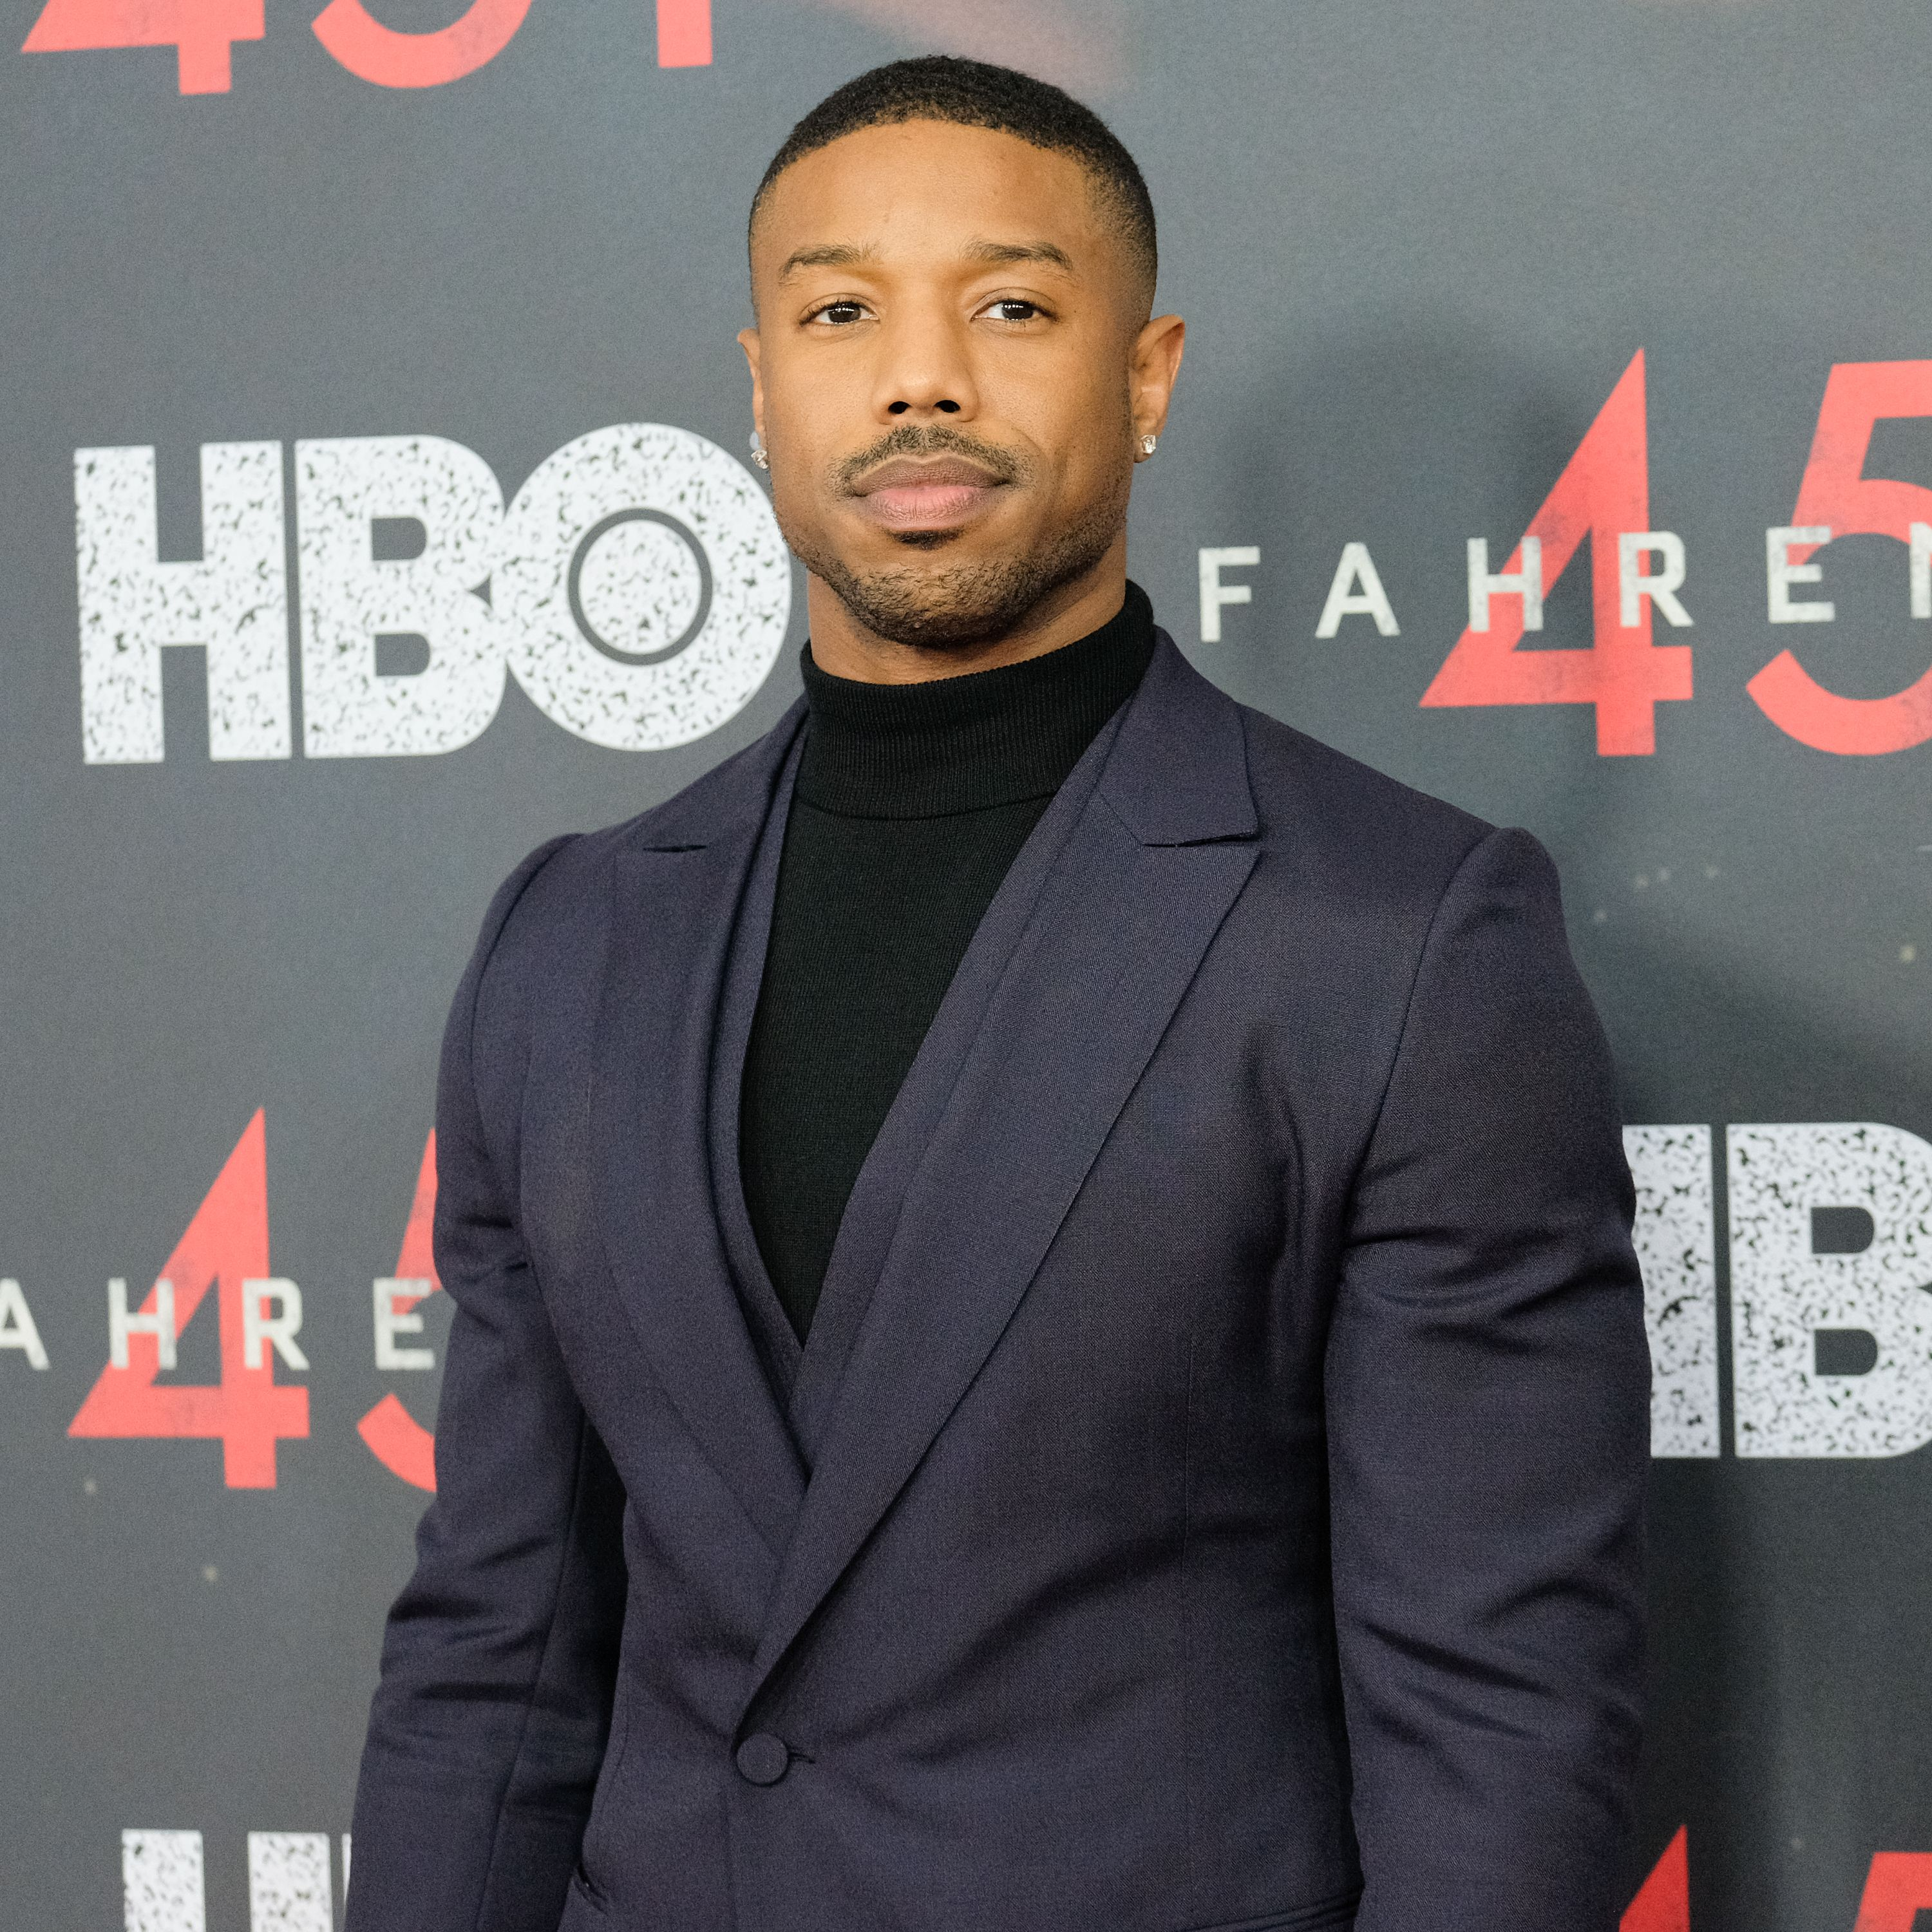 """Michael B. Jordan attends the """"Fahrenheit 451"""" premiere at NYU Skirball Center on May 8, 2018 in New York. 